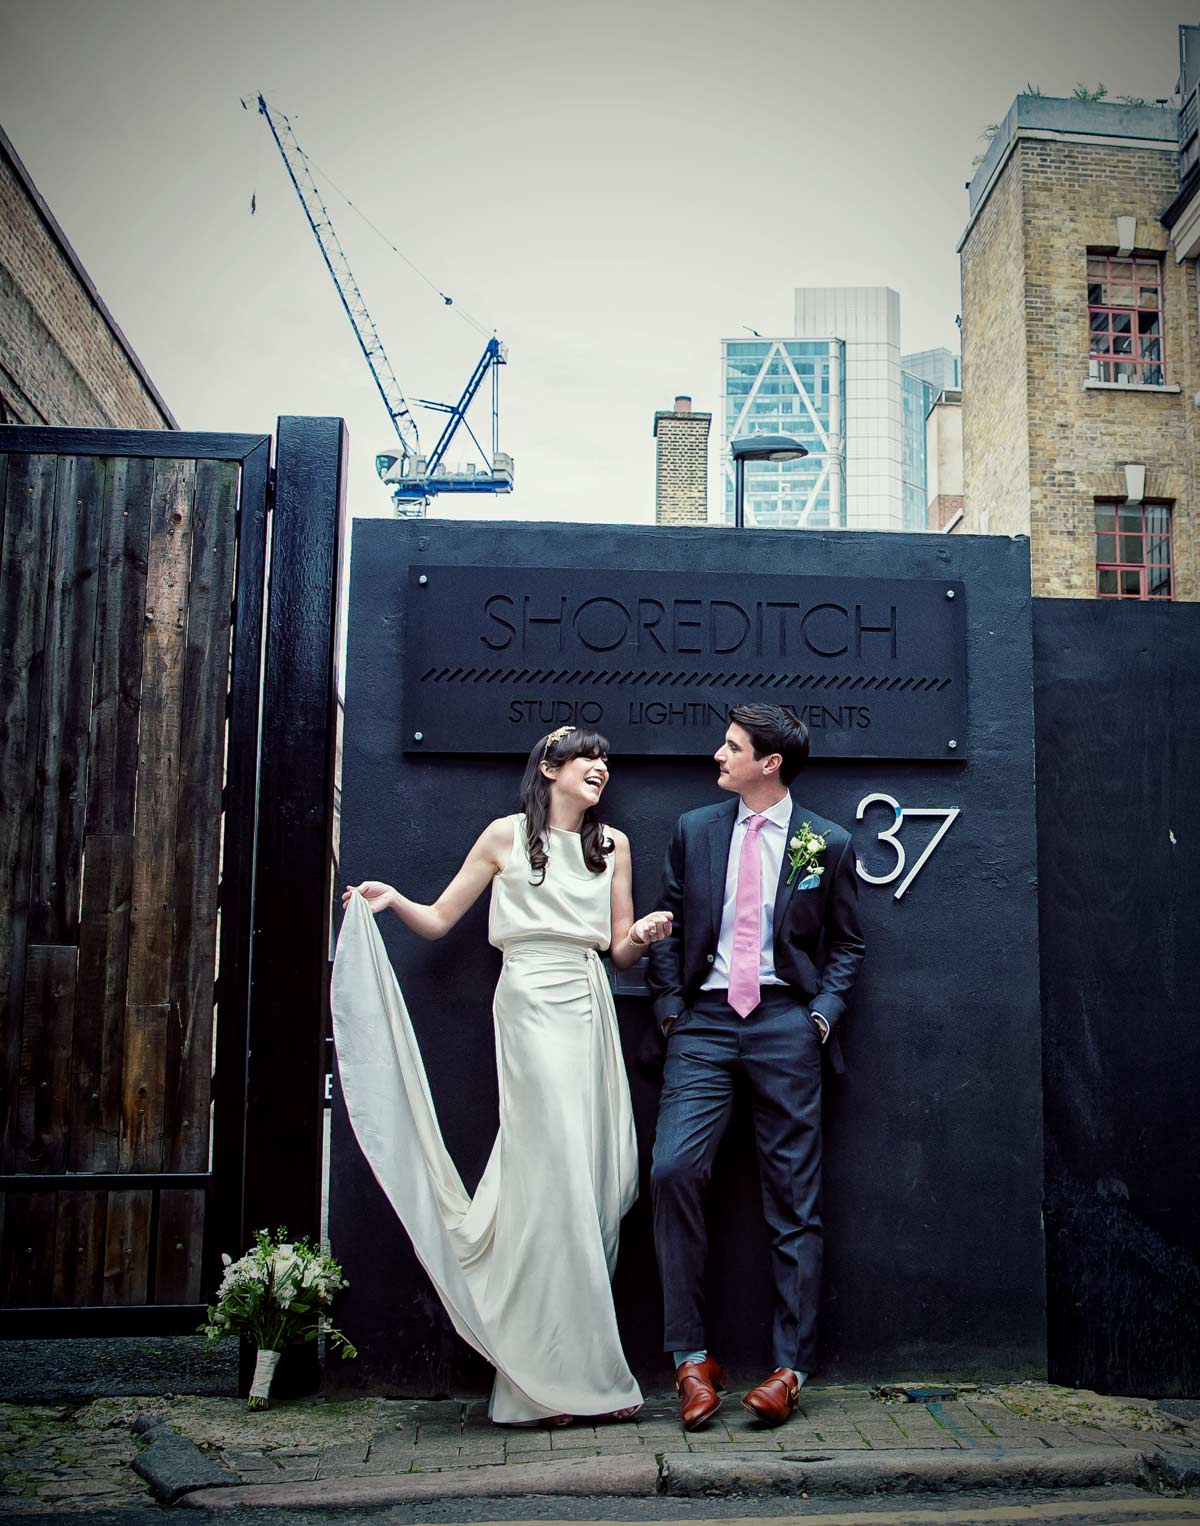 Wedding at Shoreditch Studios East London